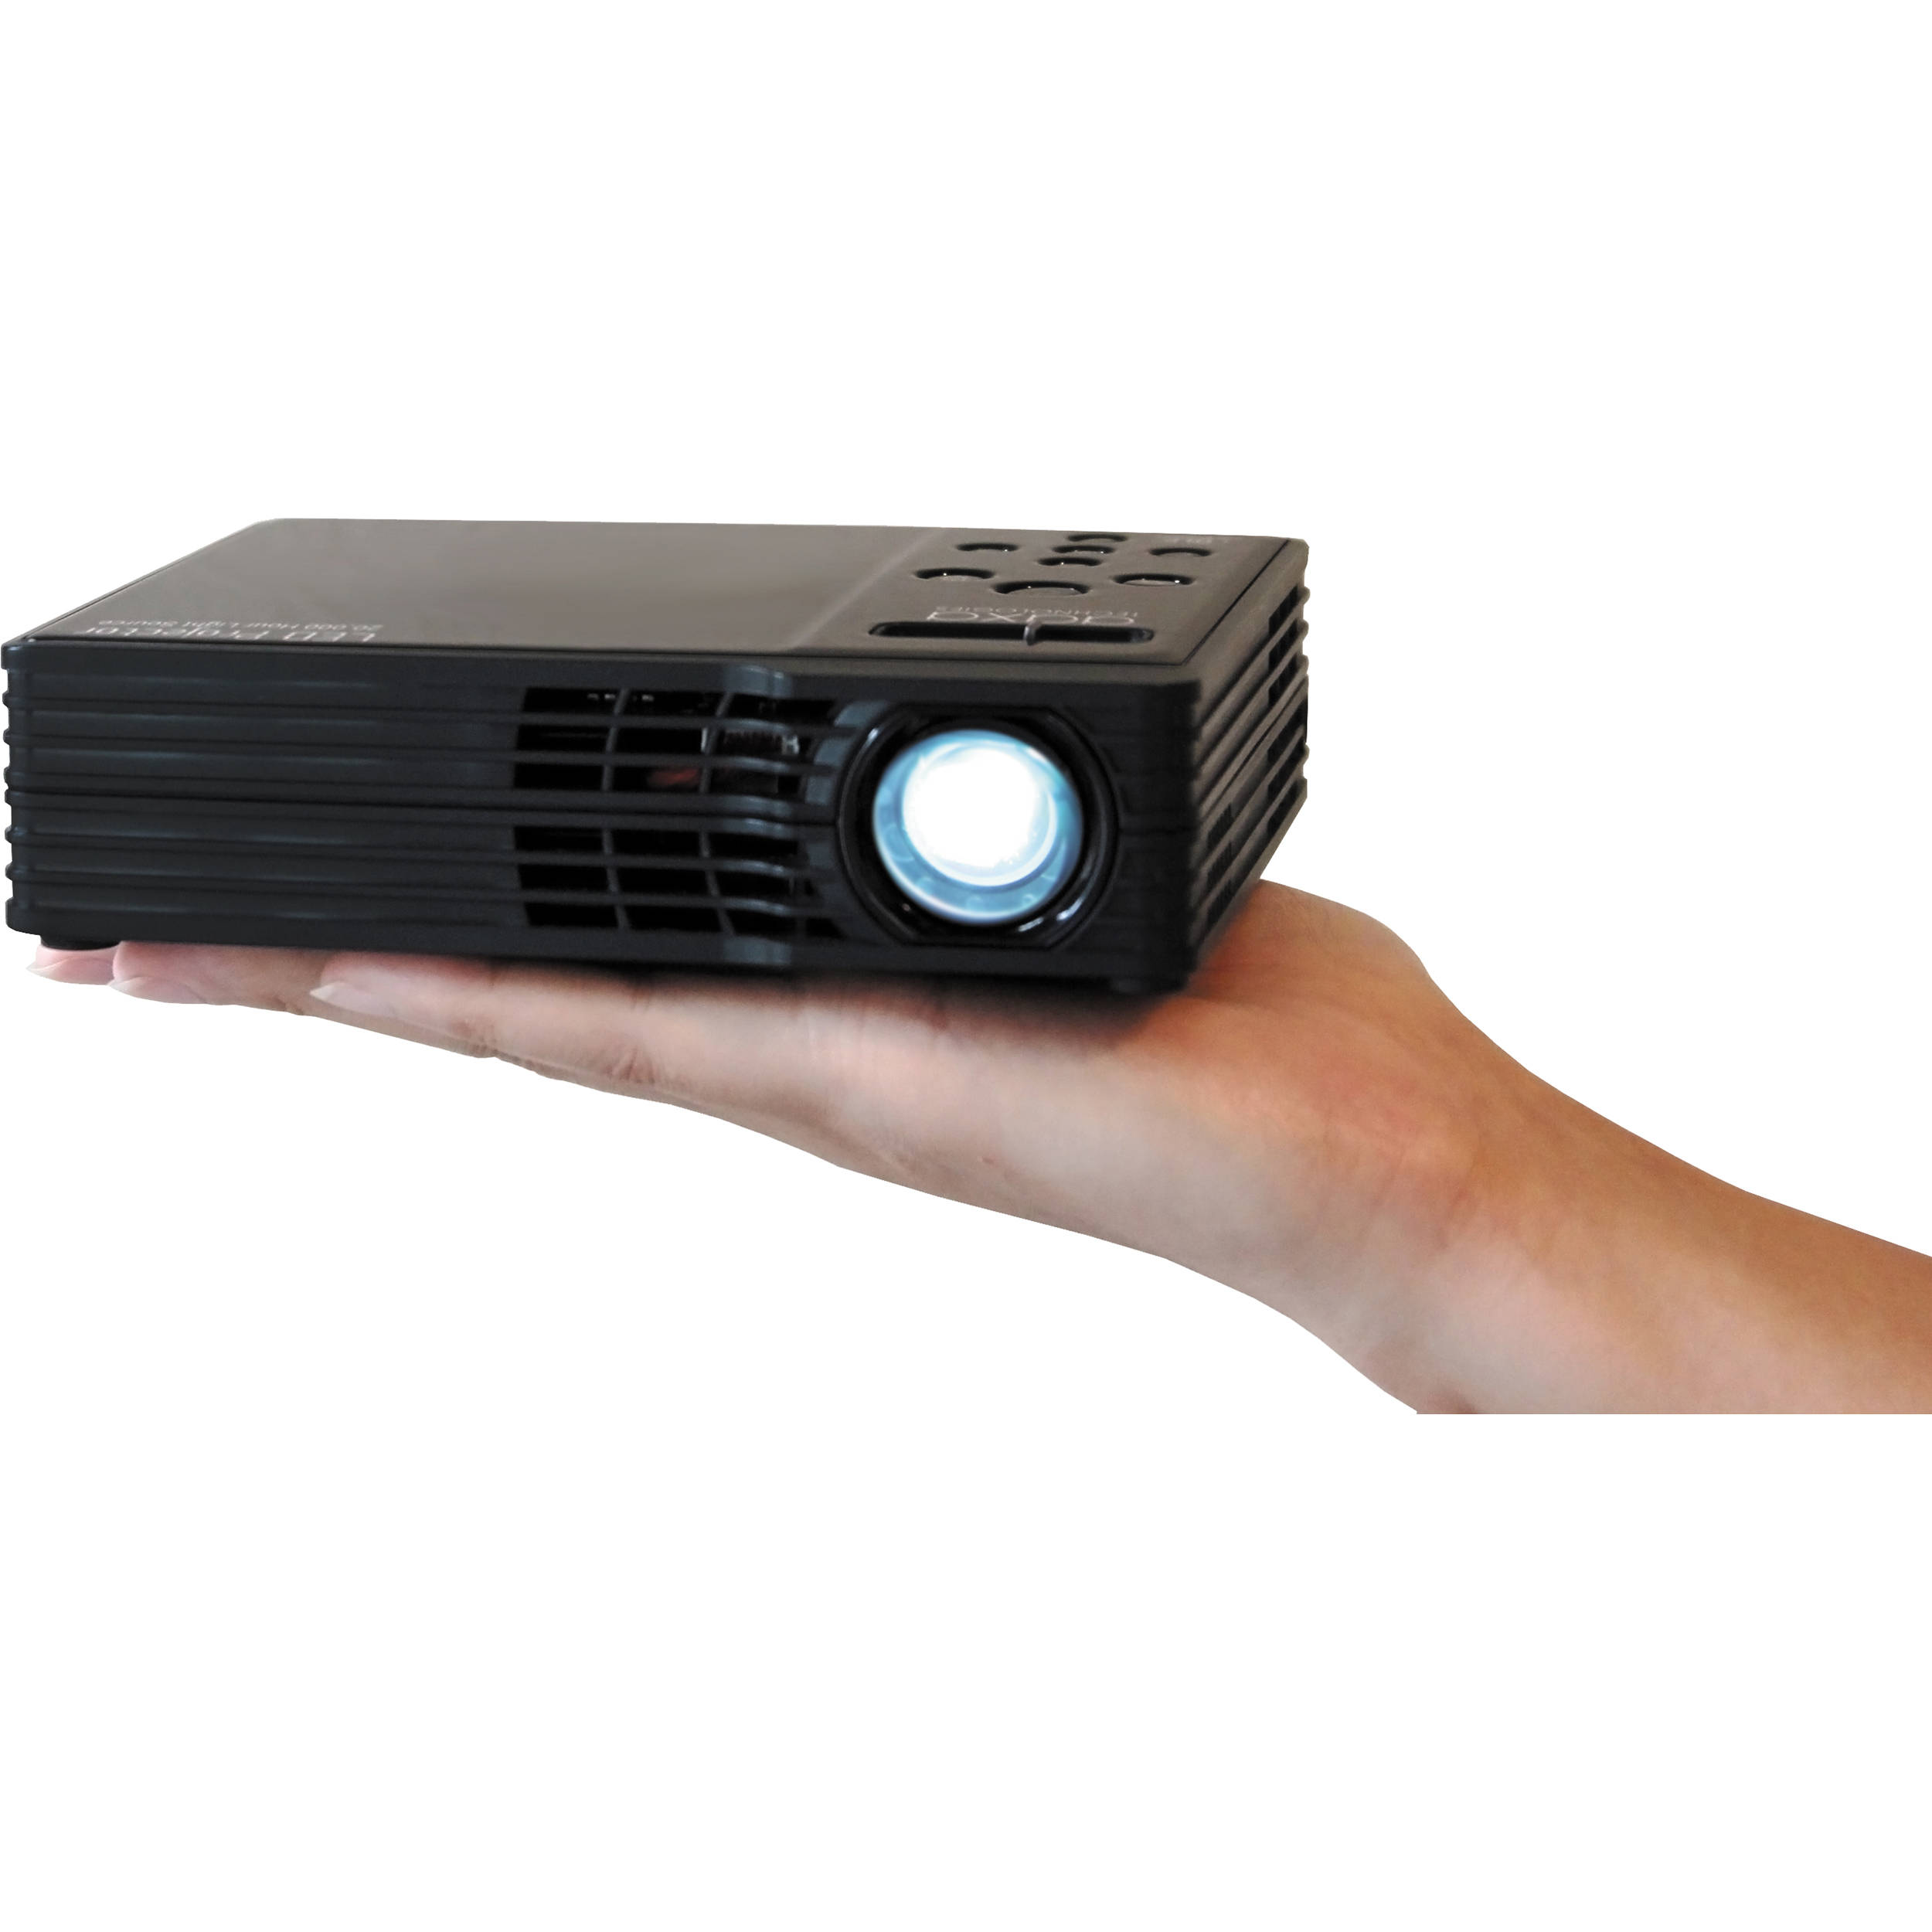 Aaxa technologies led showtime 3d micro projector mp 300 for Micro projector reviews